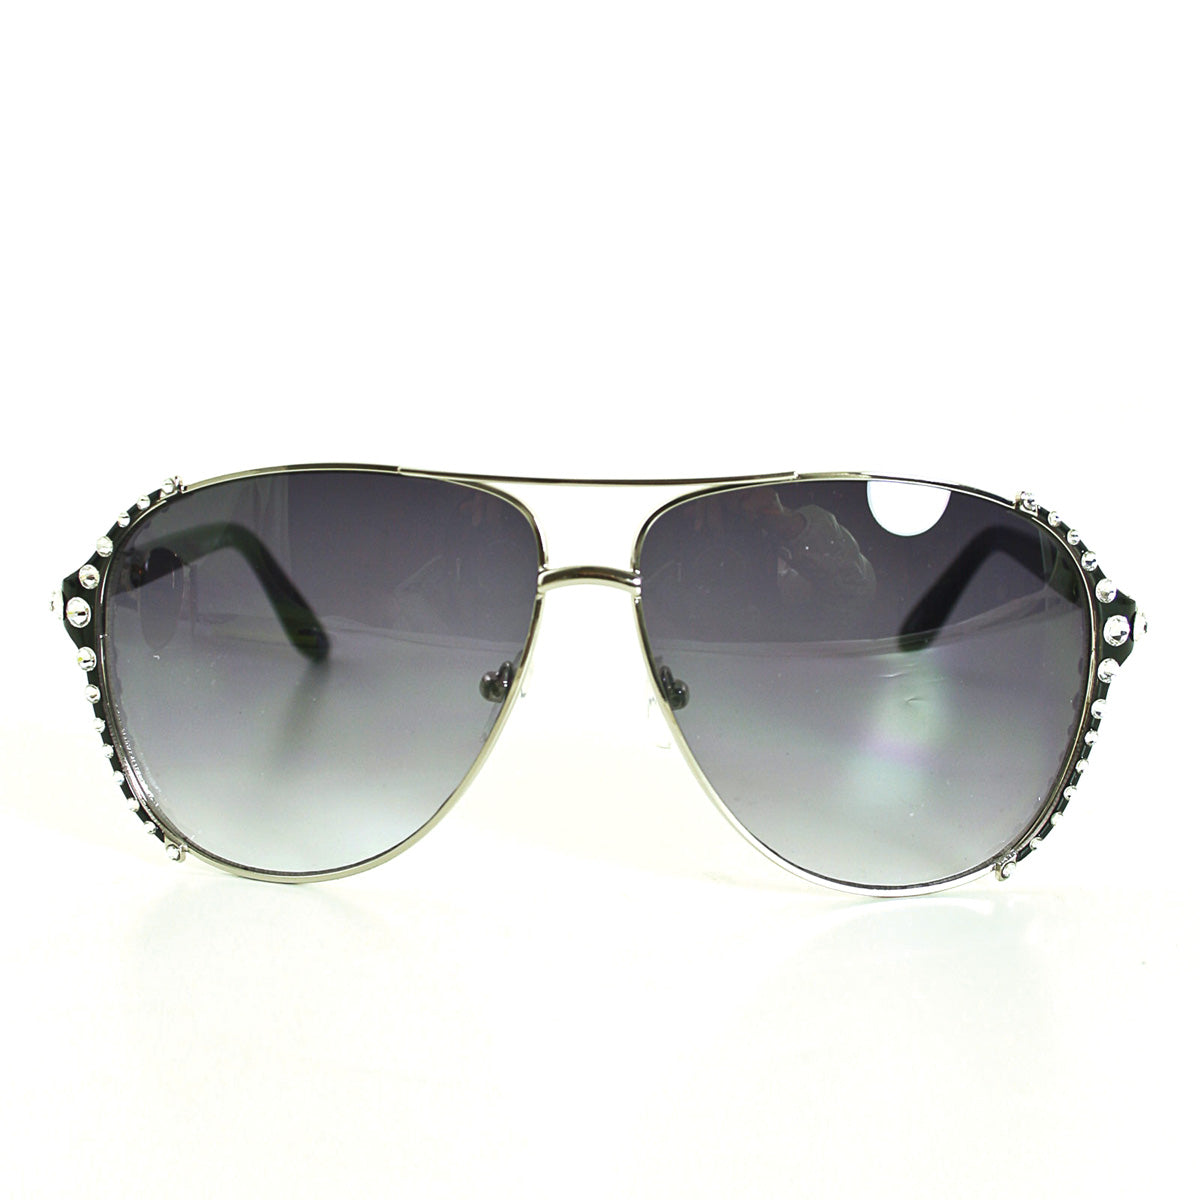 Sunglasses Made with Swarovski Elements, brown color, front view